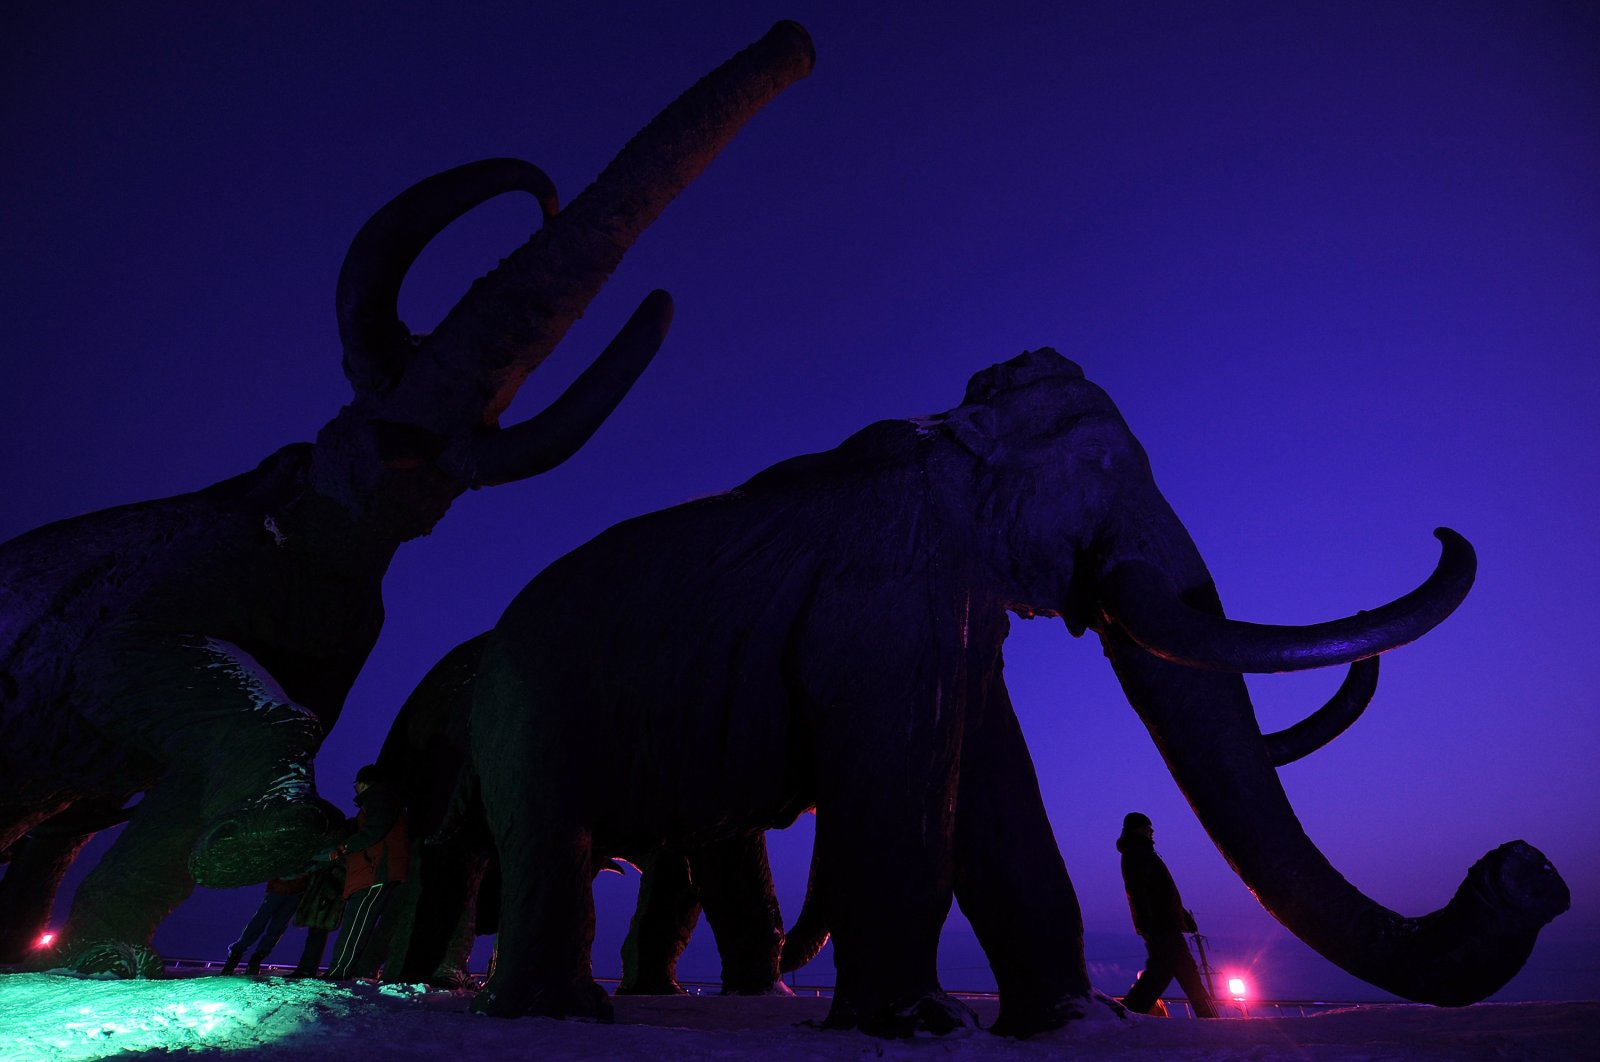 A person walks past giant bronze sculptures of mammoths during the World Biathlon Championships in Khanty-Mansiysk, Russia, March 7, 2011. (AFP File Photo)